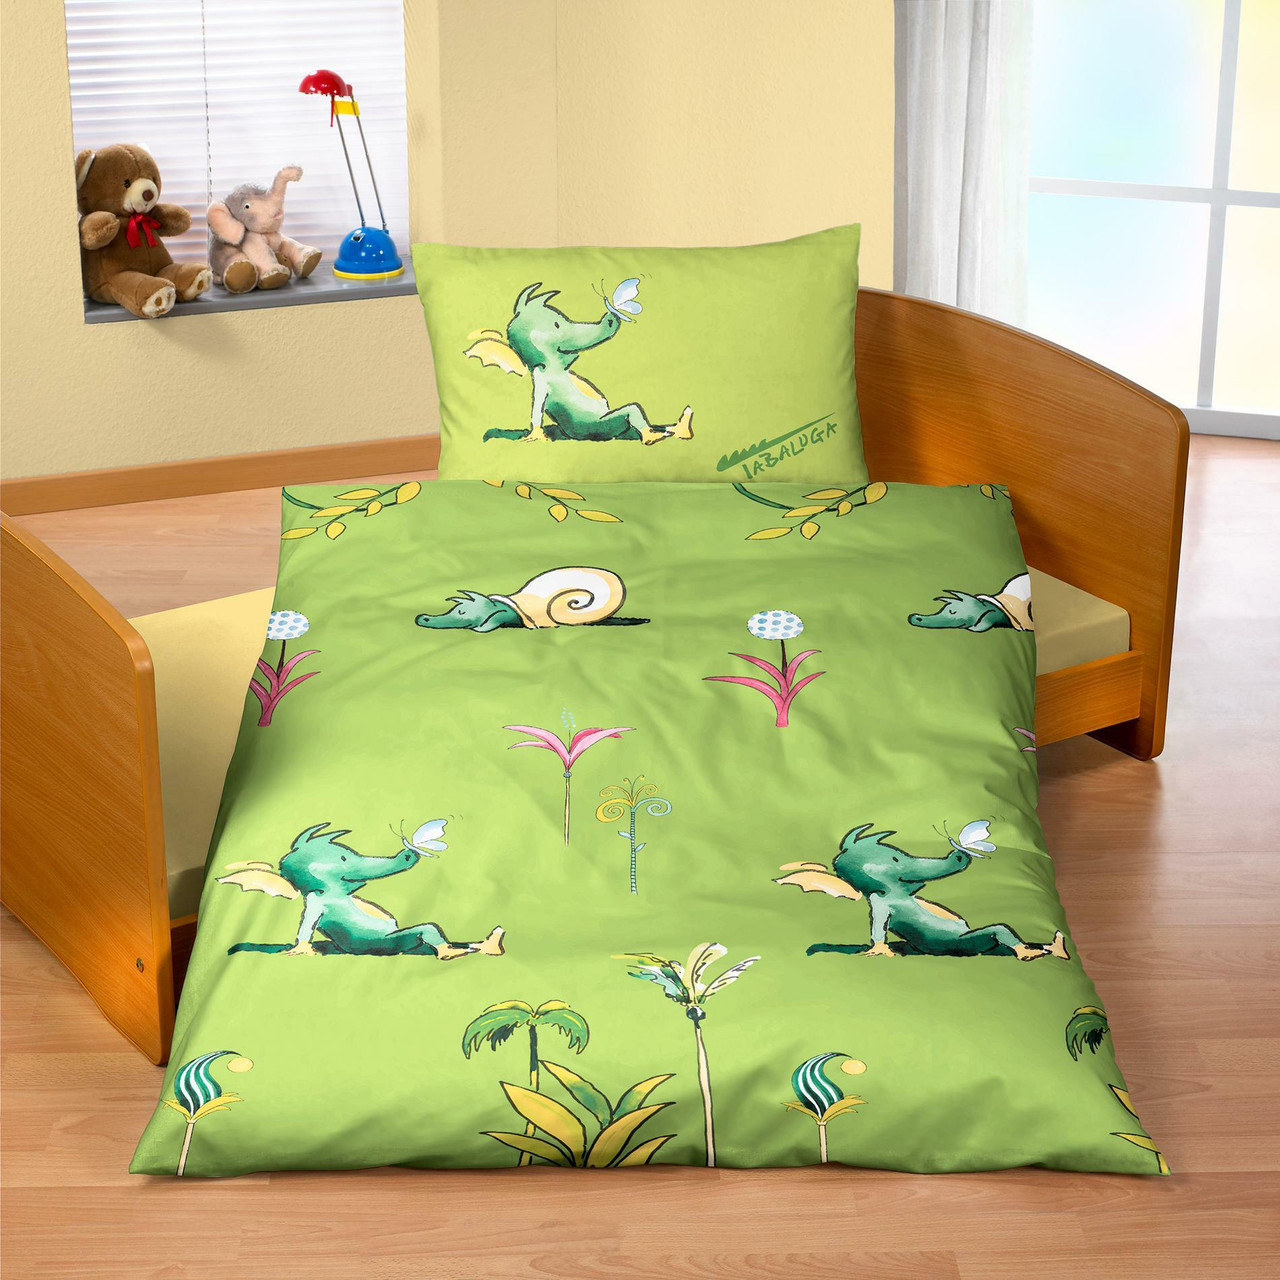 Junior and Toddler Duvet Covers